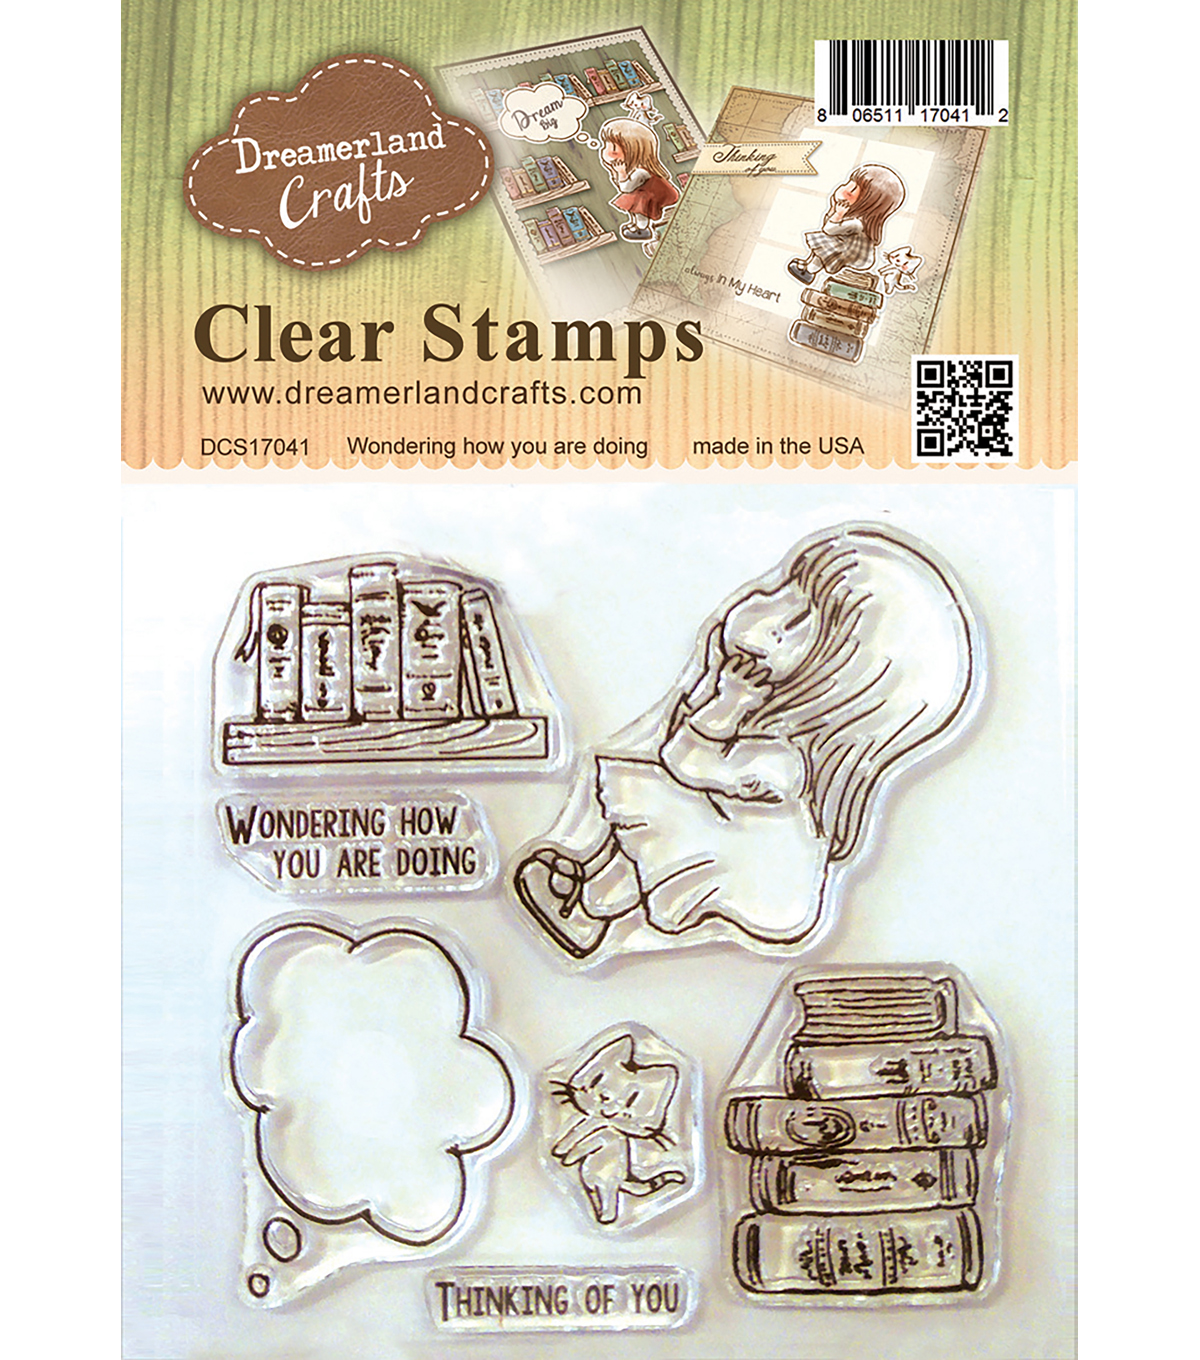 Dreamerland Crafts Clear Stamp Set 4\u0027\u0027x4\u0027\u0027-Wondering How You Are Doing